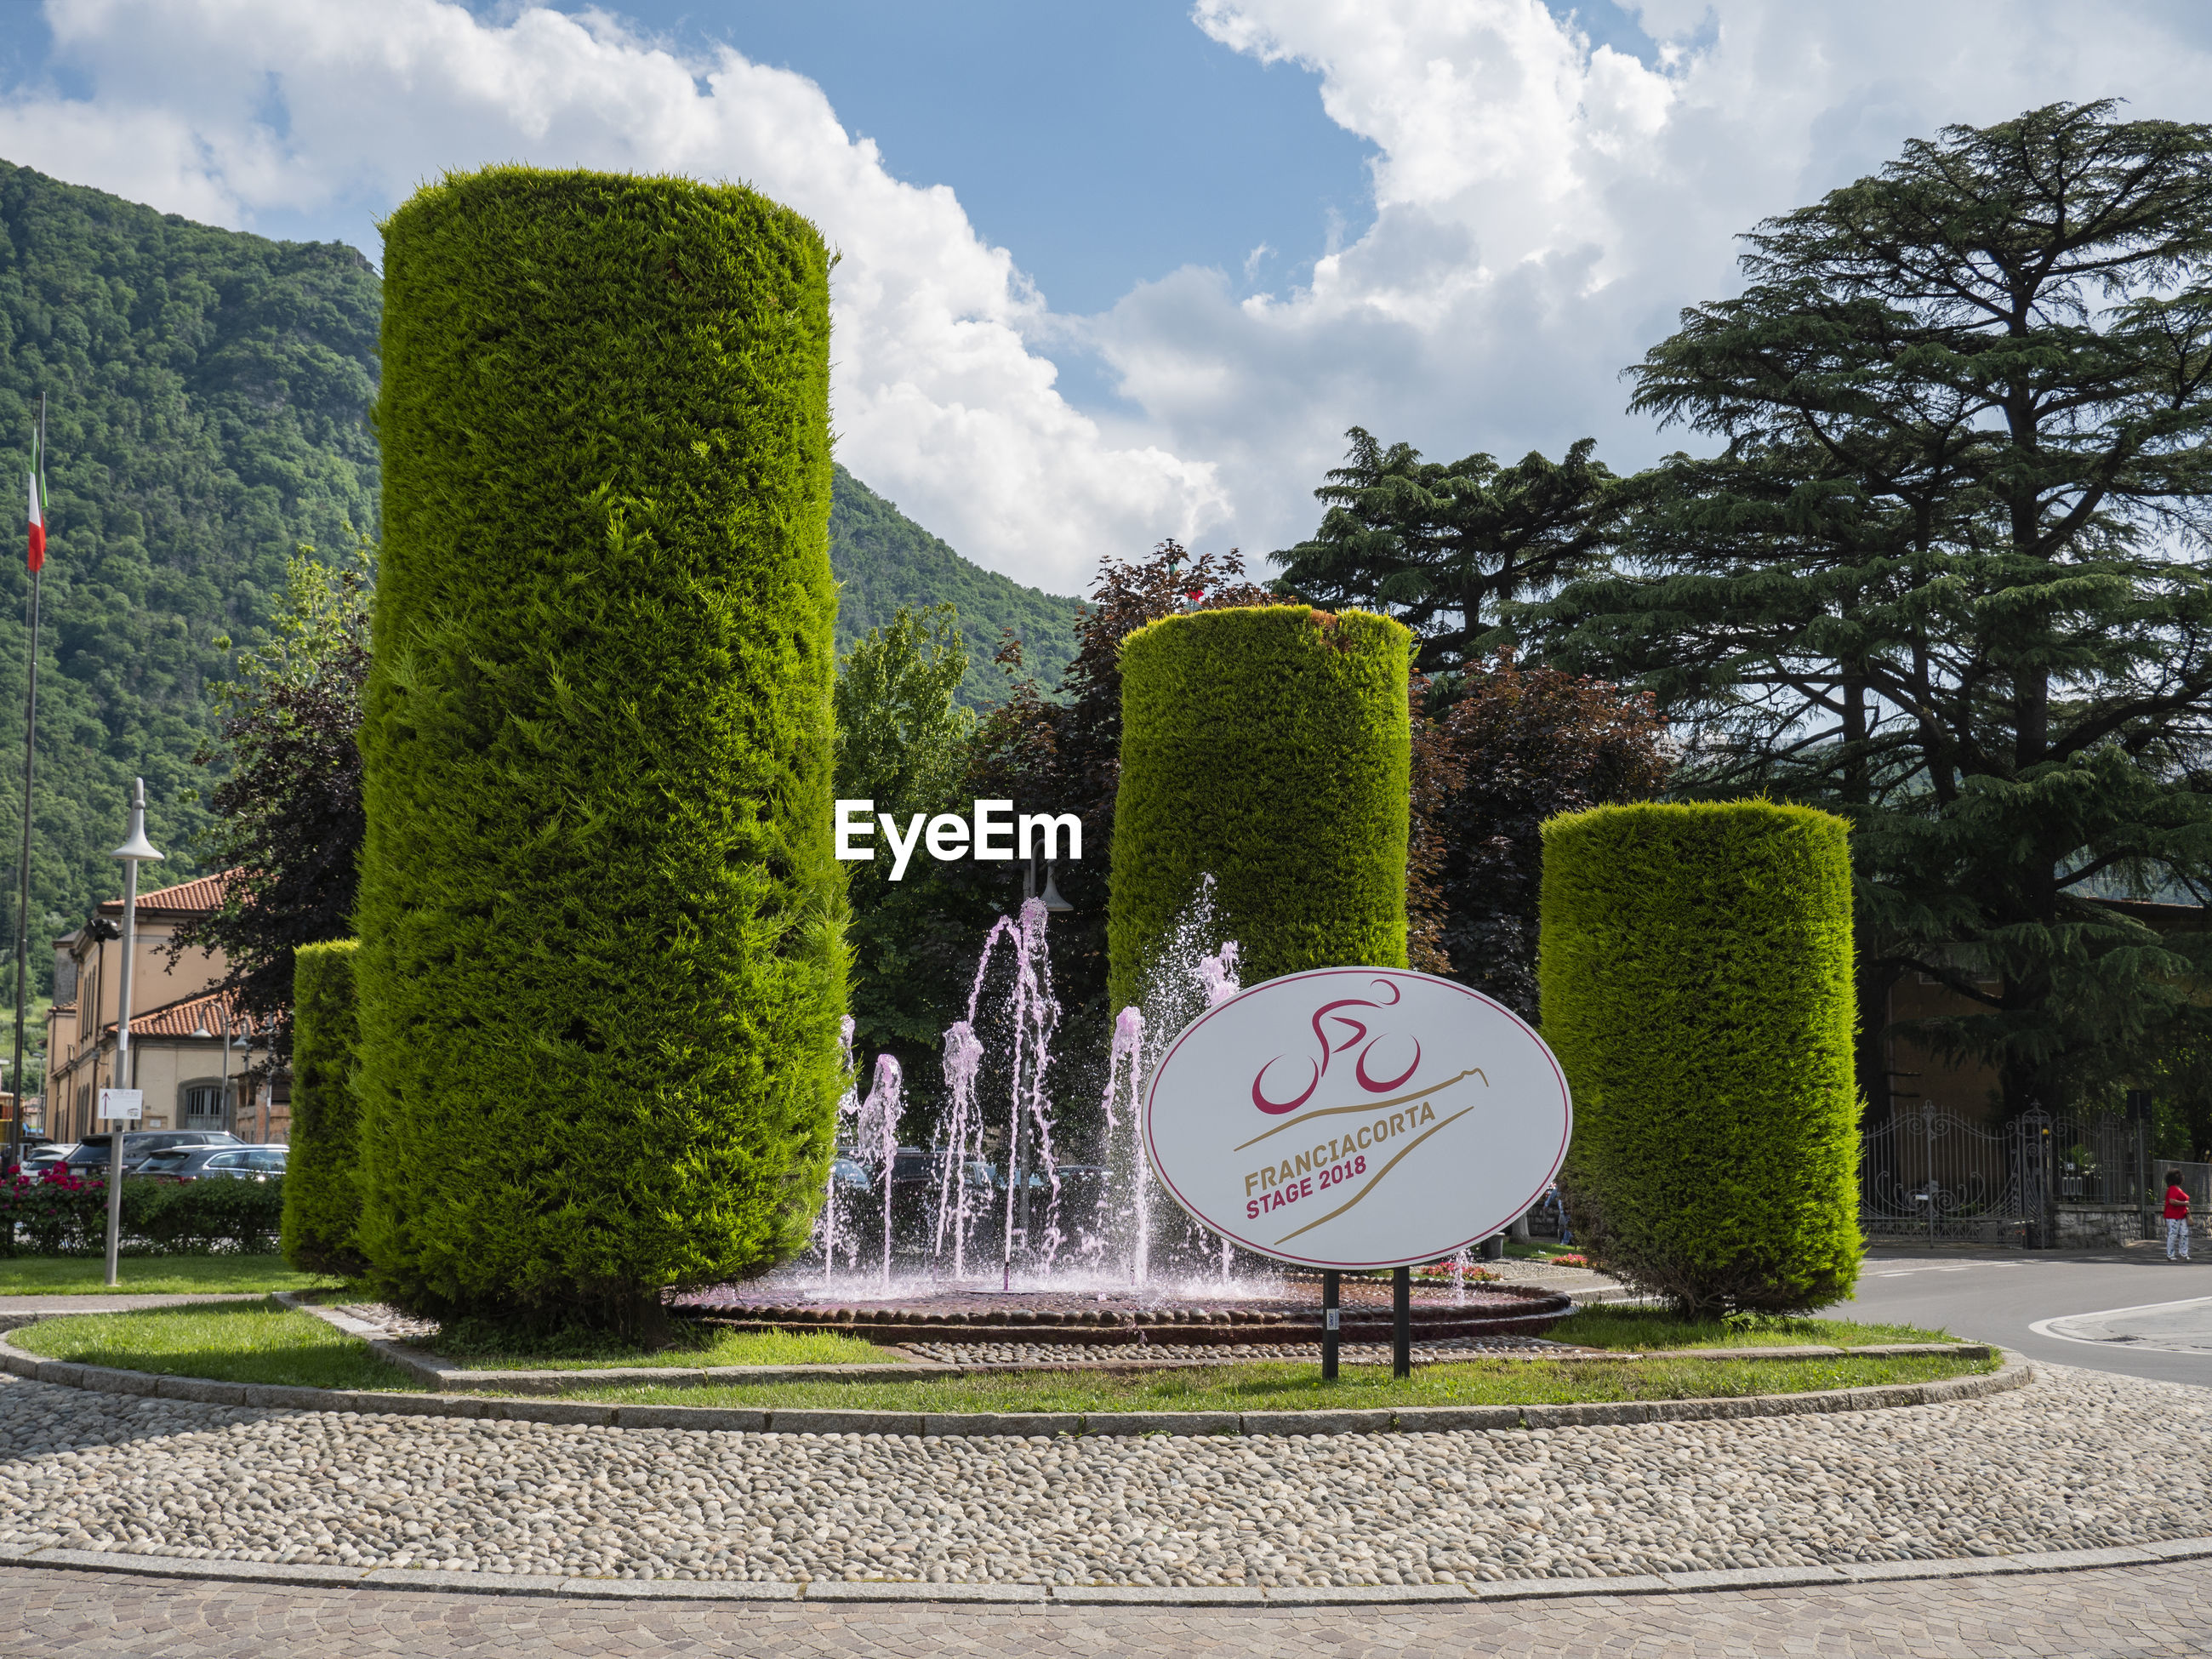 VIEW OF ROAD SIGN IN PARK